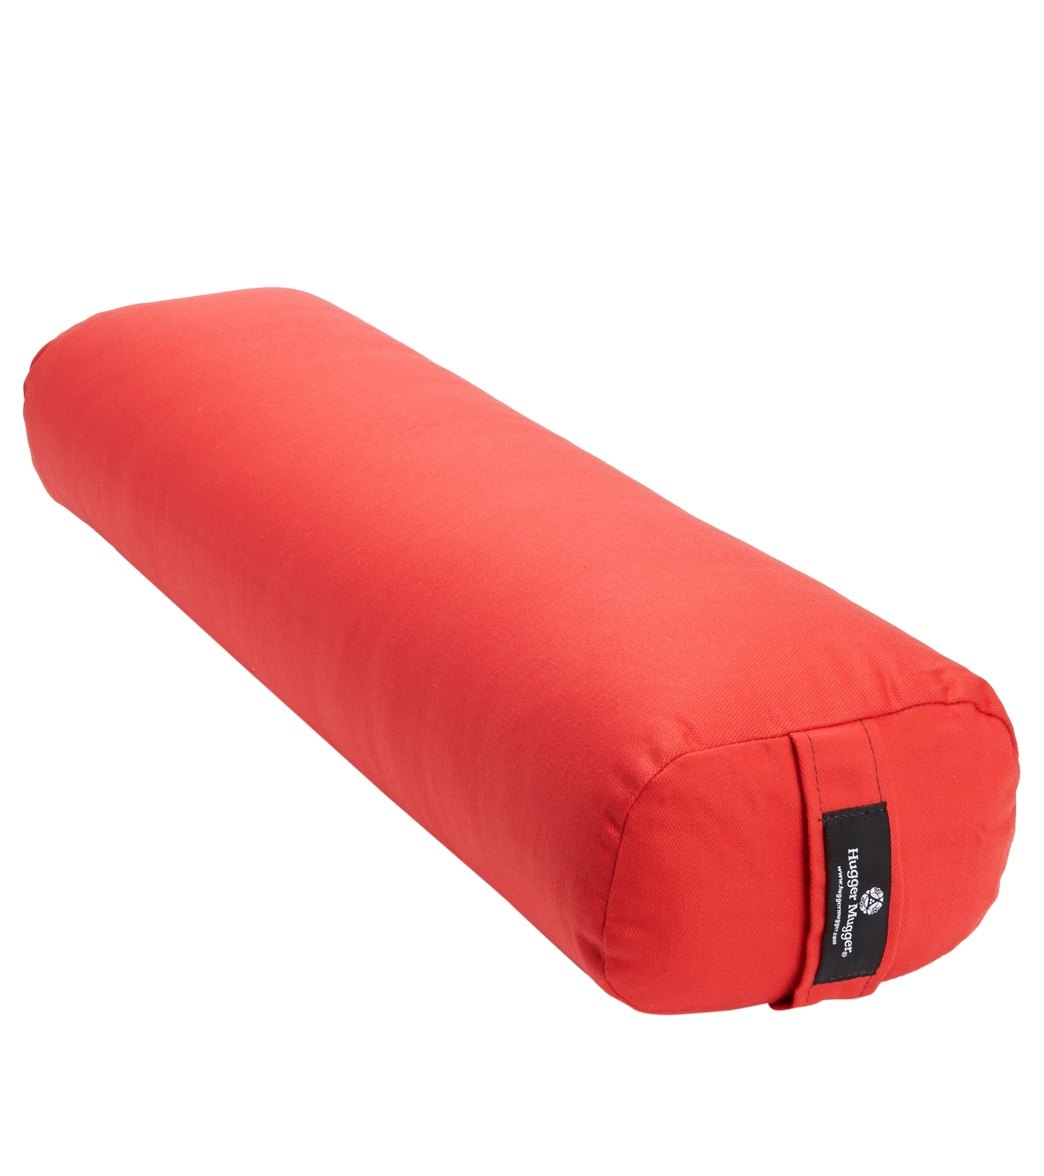 The Junior Yoga Bolster from Hugger Mugger(TM) is smaller than a standard yoga bolster that helps promote chest expansion and free respiration. Narrow width with a slightly arched top. Great for all types of yoga. Lightweight and portable. Removable cover with a convenient handle. Dimensions: 5\